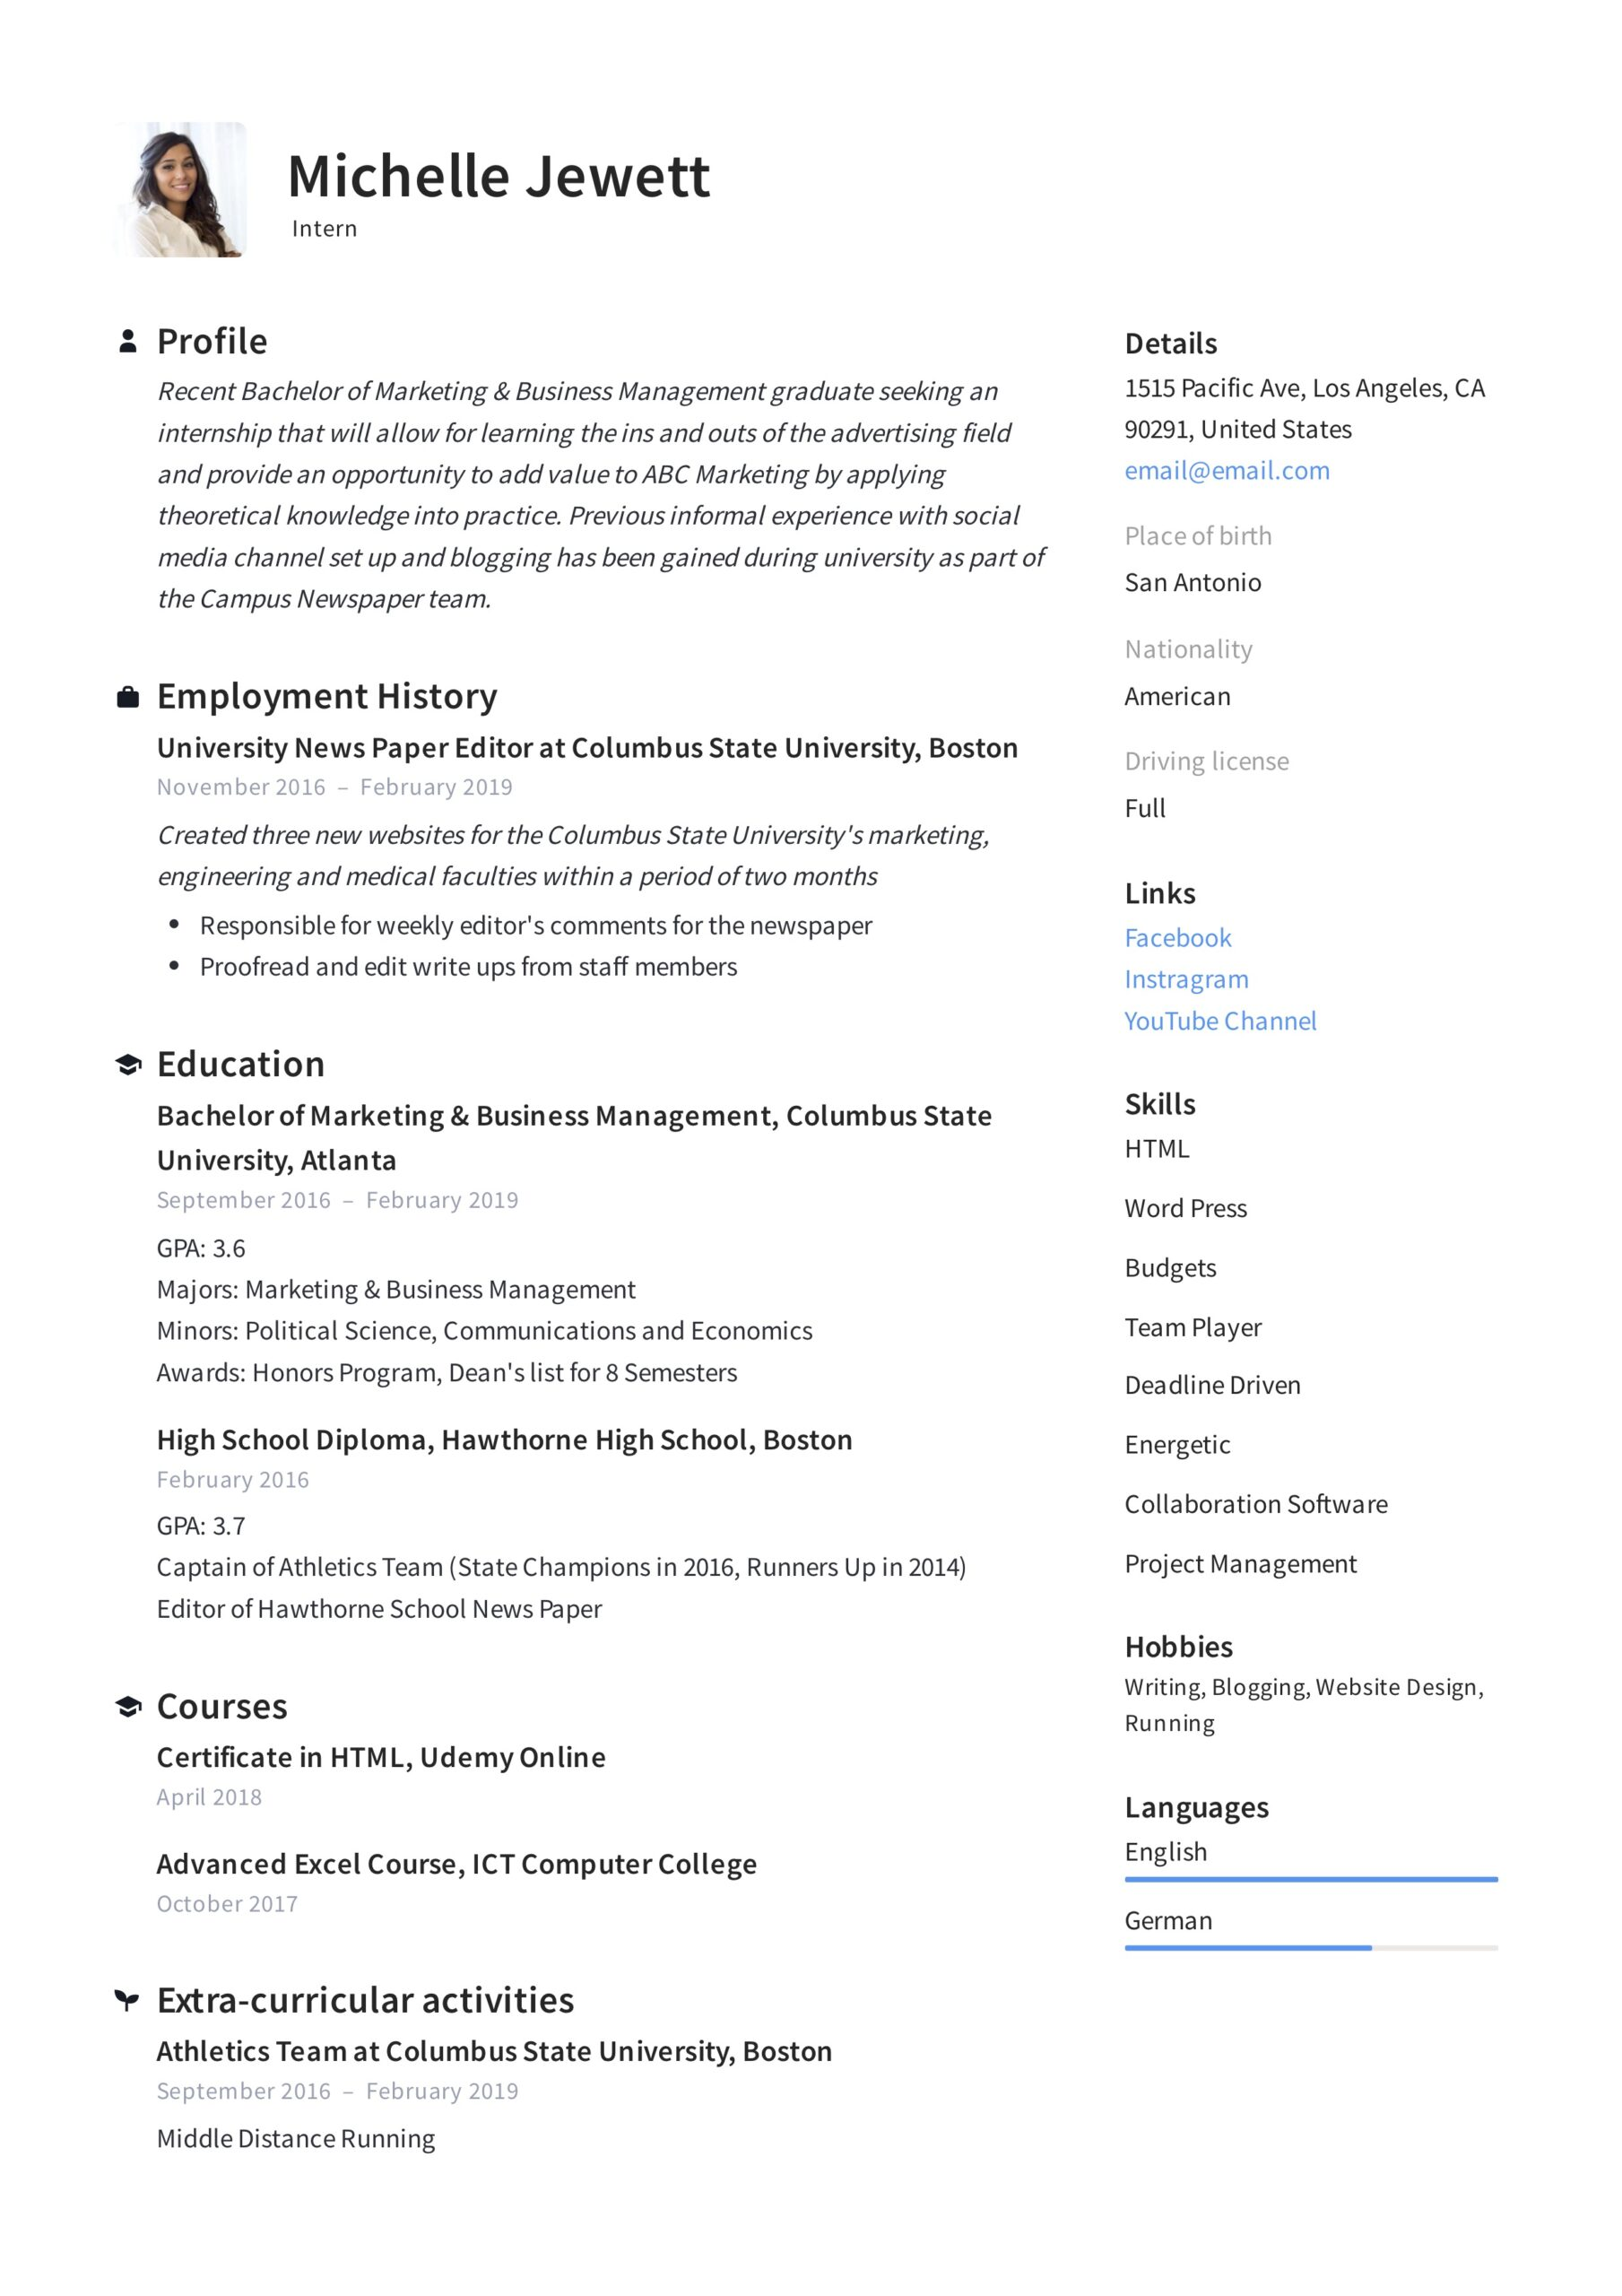 intern resume writing guide samples pdf college student summer internship example deli Resume College Student Summer Internship Resume